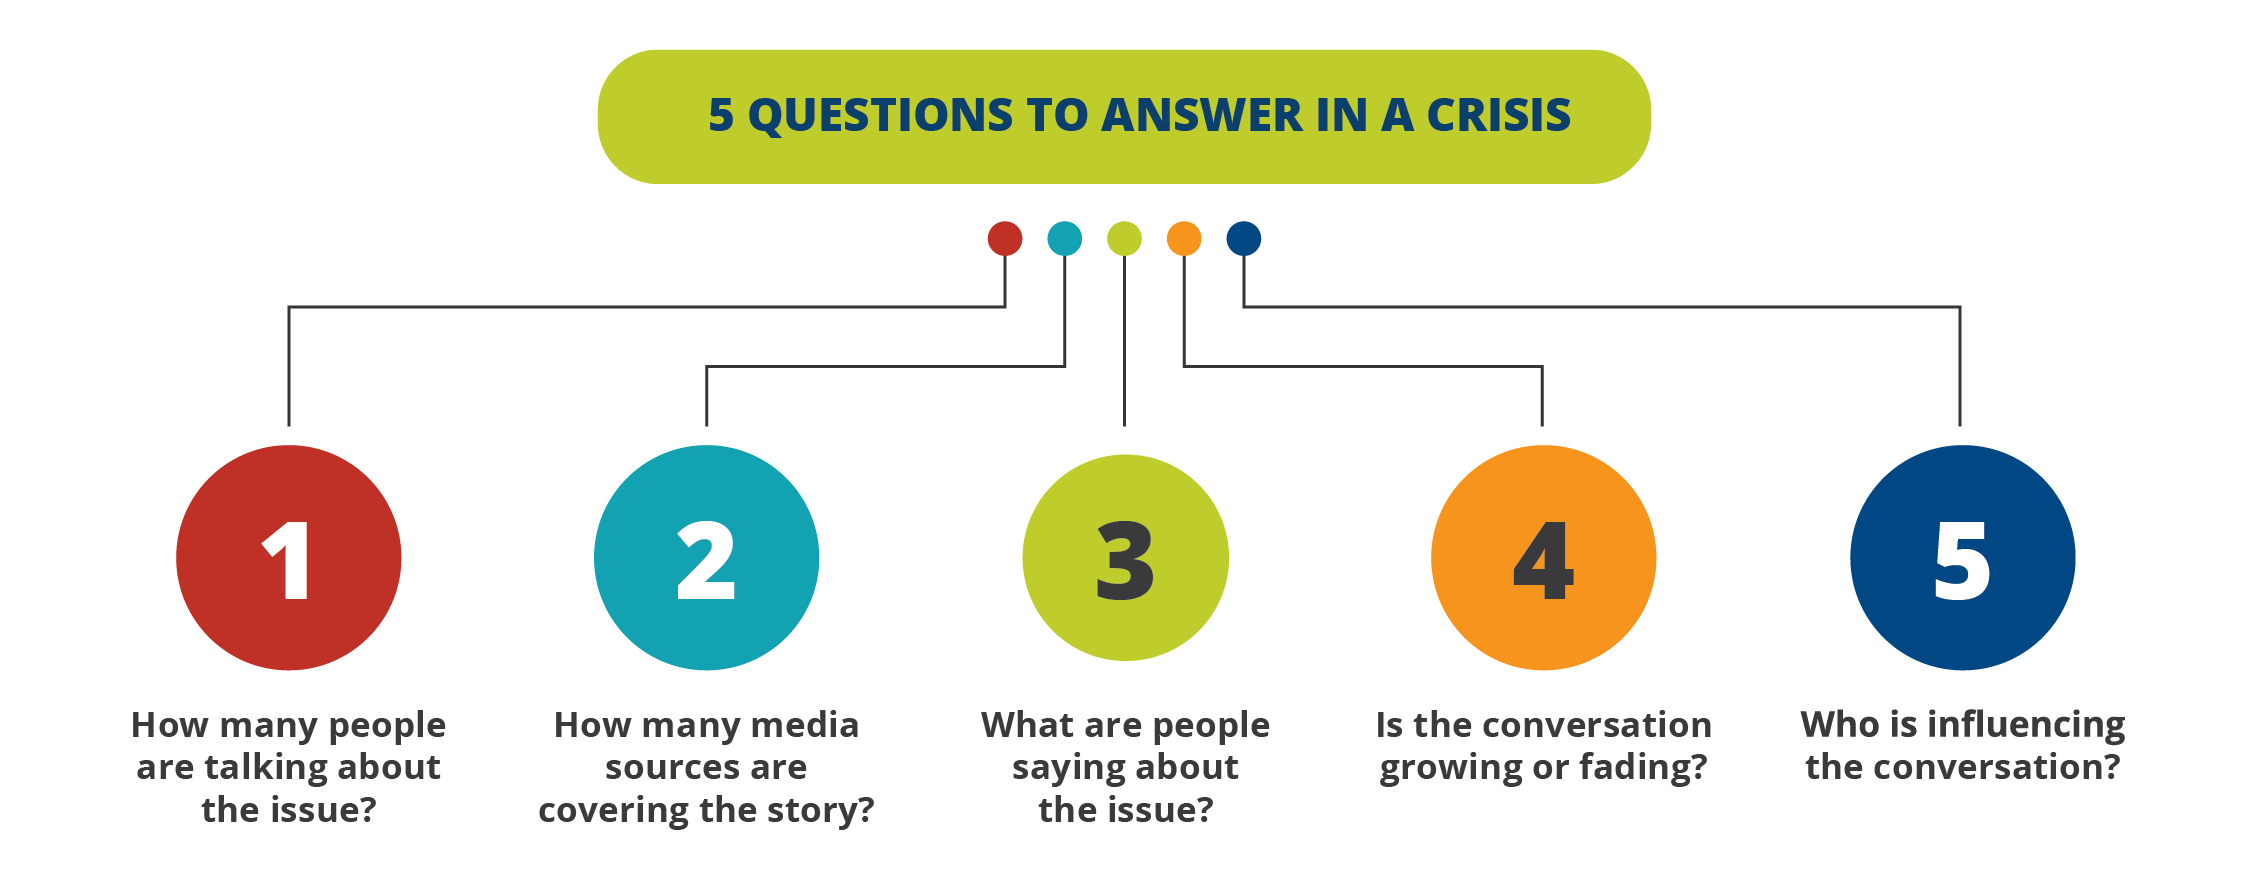 5 Questions to Answer in a Crisis: 1. How many people are talking about the issue? 2. How many media sources are covering the story? 3. What are people saying about the issue? 4. Is the conversation growing or fading? 5. Who is influencing the conversation?